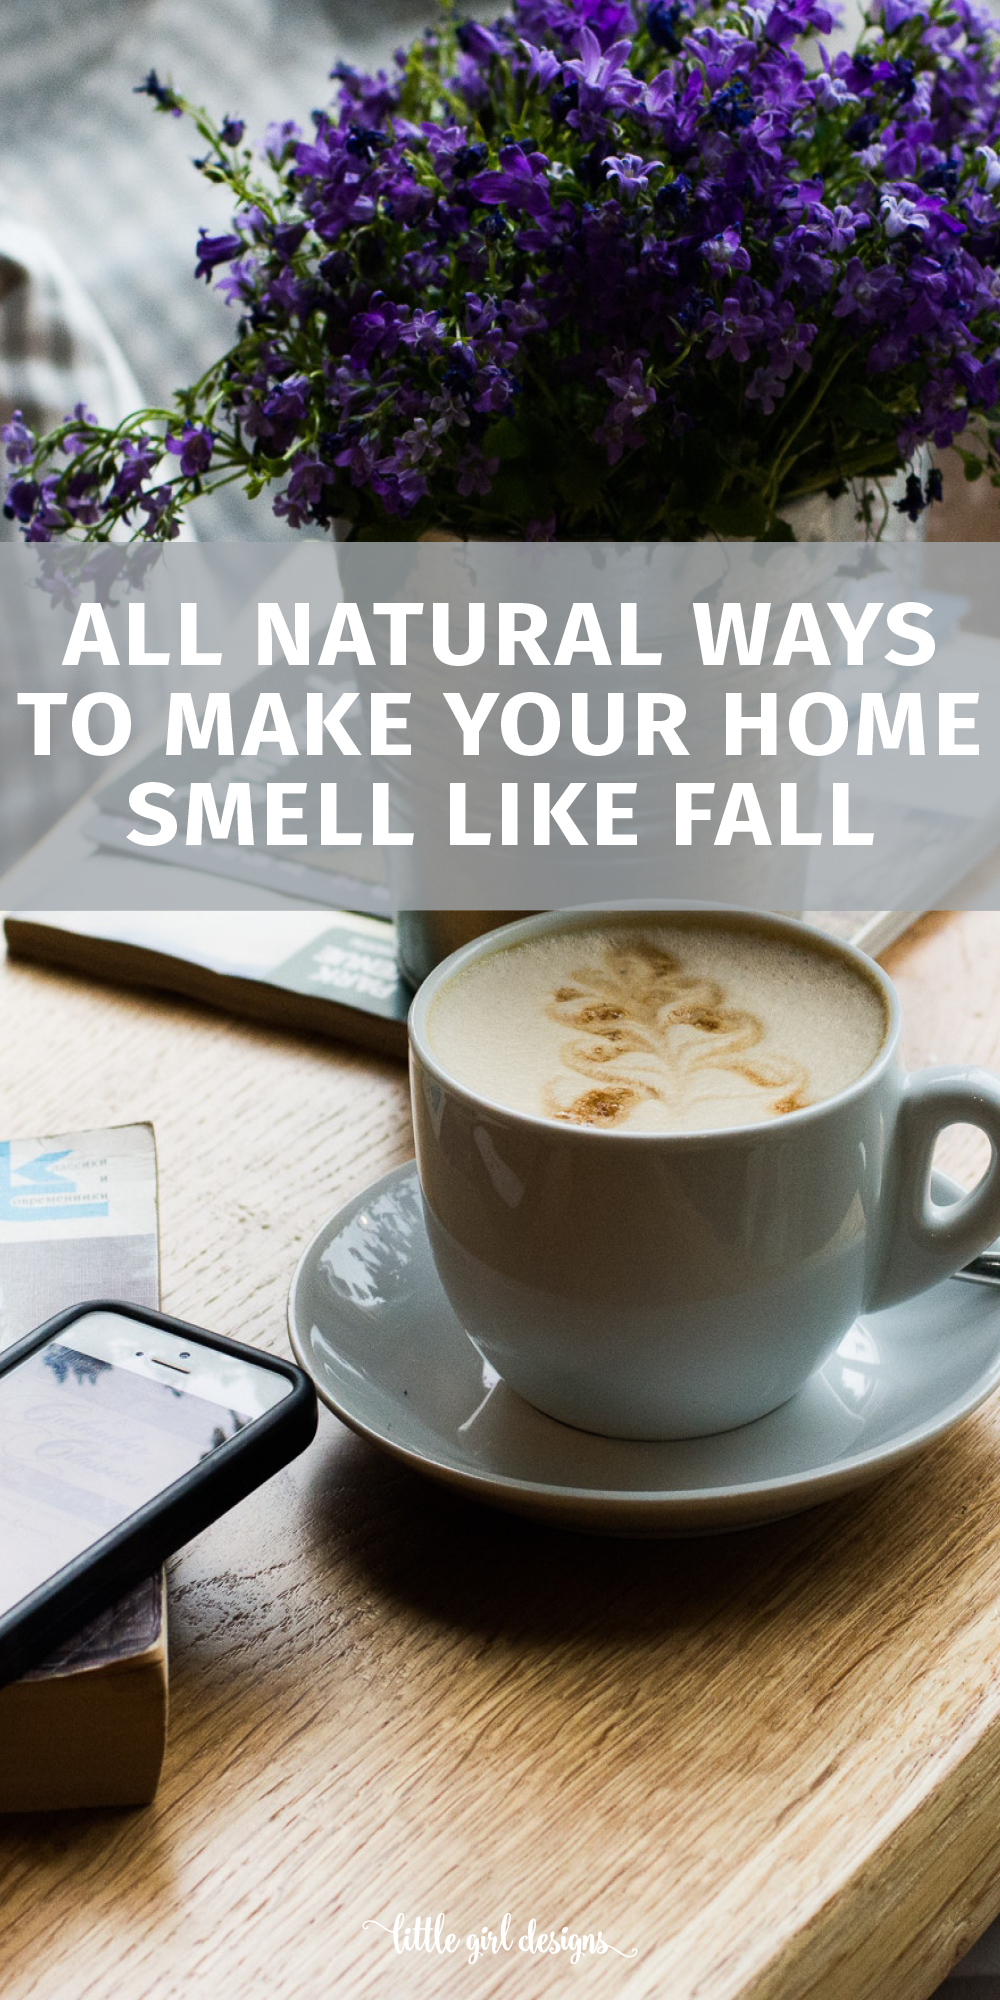 10 Natural Makeup Ideas For Everyday: 10 Natural Ways To Make Your Home Smell Like Fall